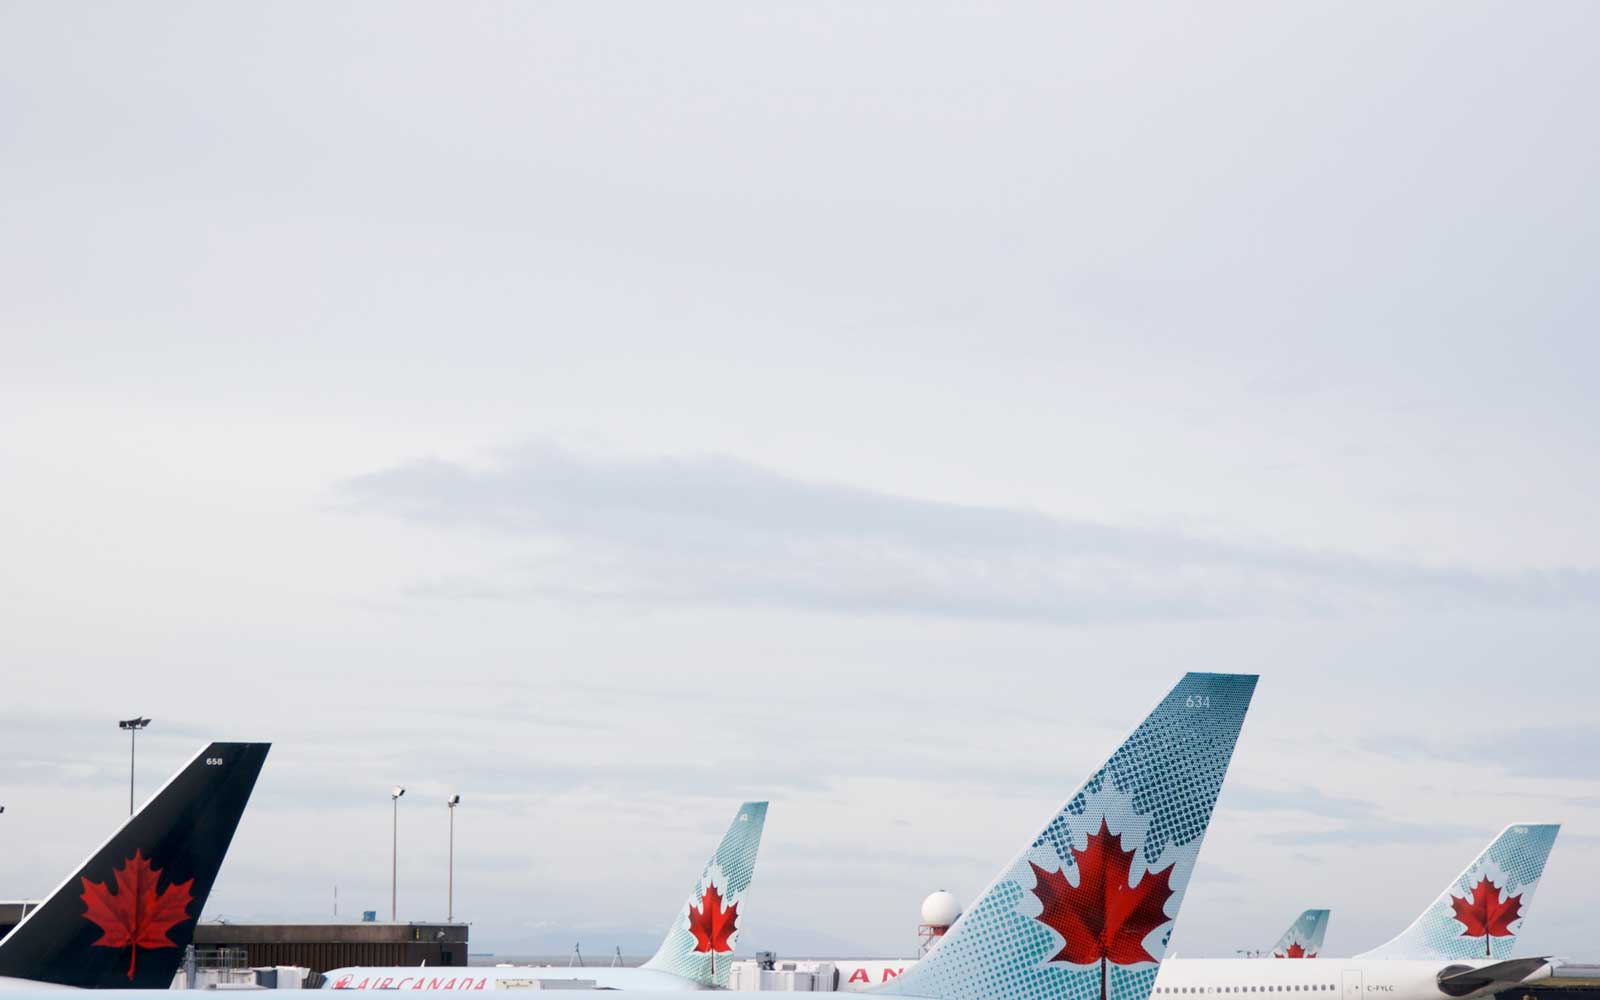 Air Canada Pilot Orders 23 Pizzas for Passengers Stranded for 8 Hours